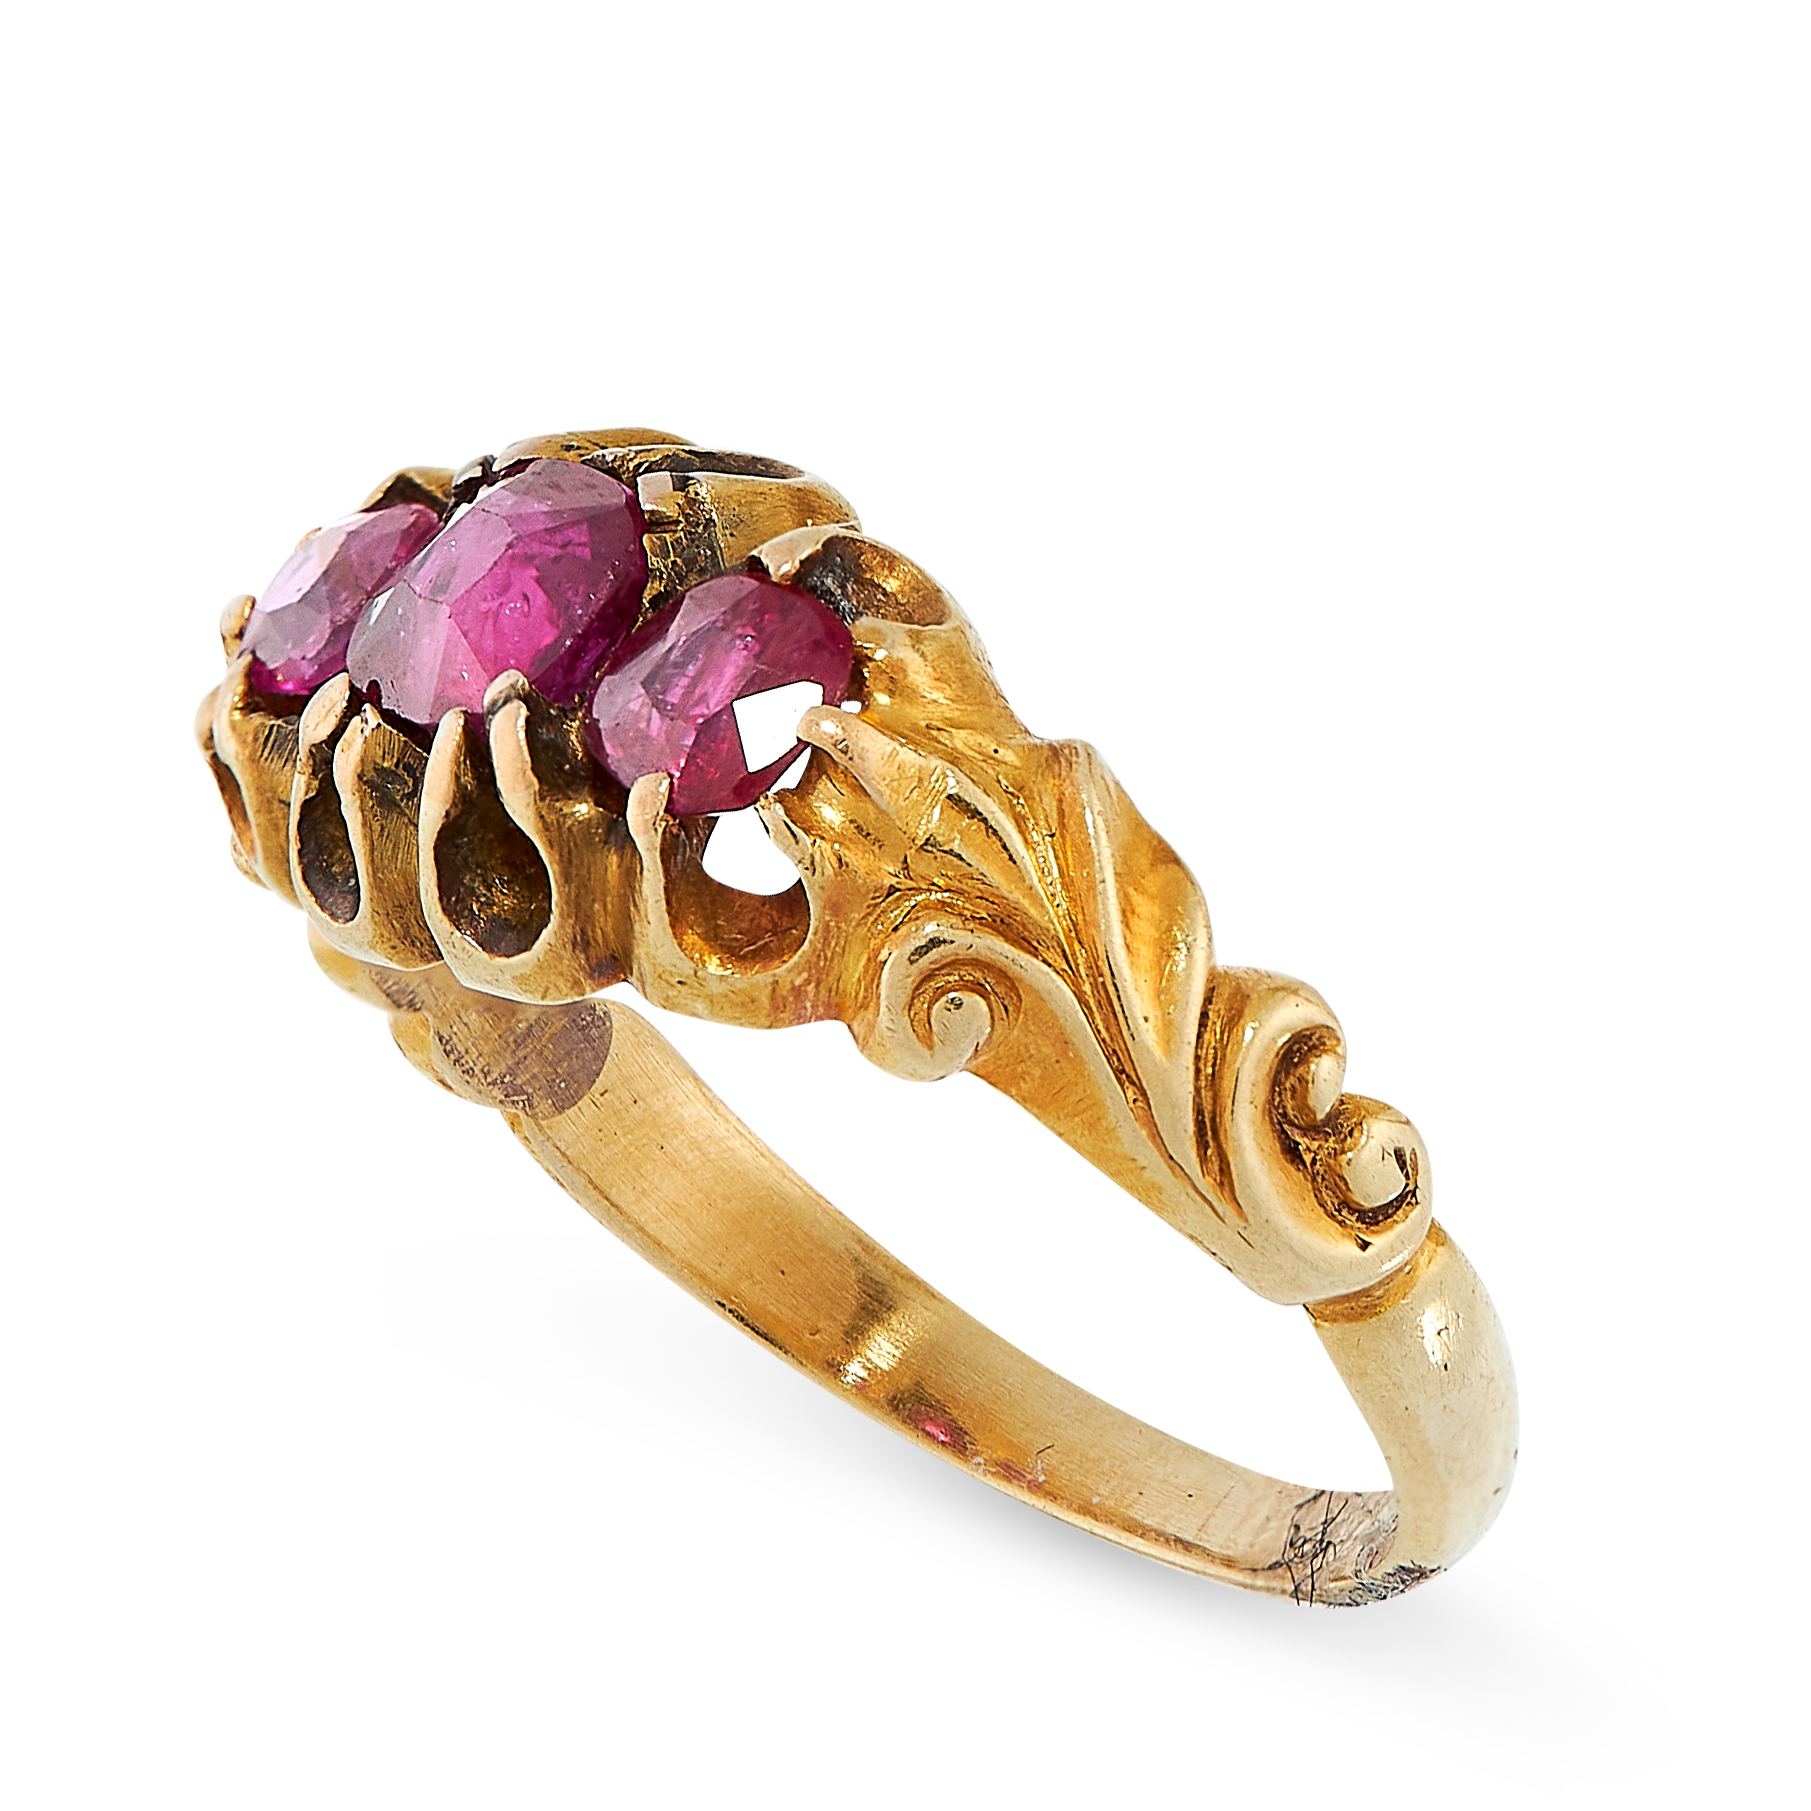 ANTIQUE RUBY RING in yellow gold, set with three graduated cushion cut rubies, unmarked, size N / - Image 2 of 2